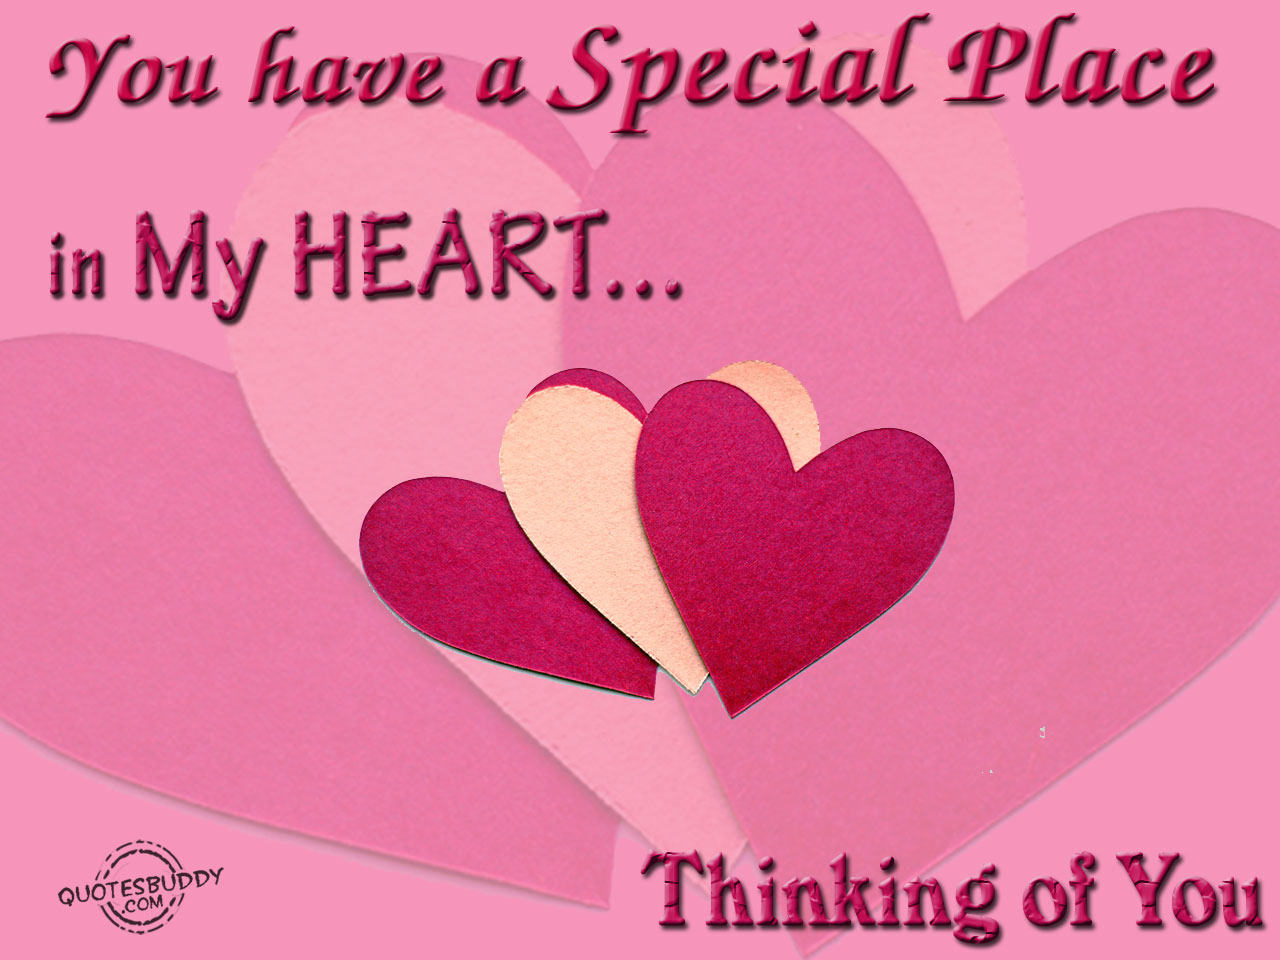 You Have A Special Place In My Heart, Thinking Of You